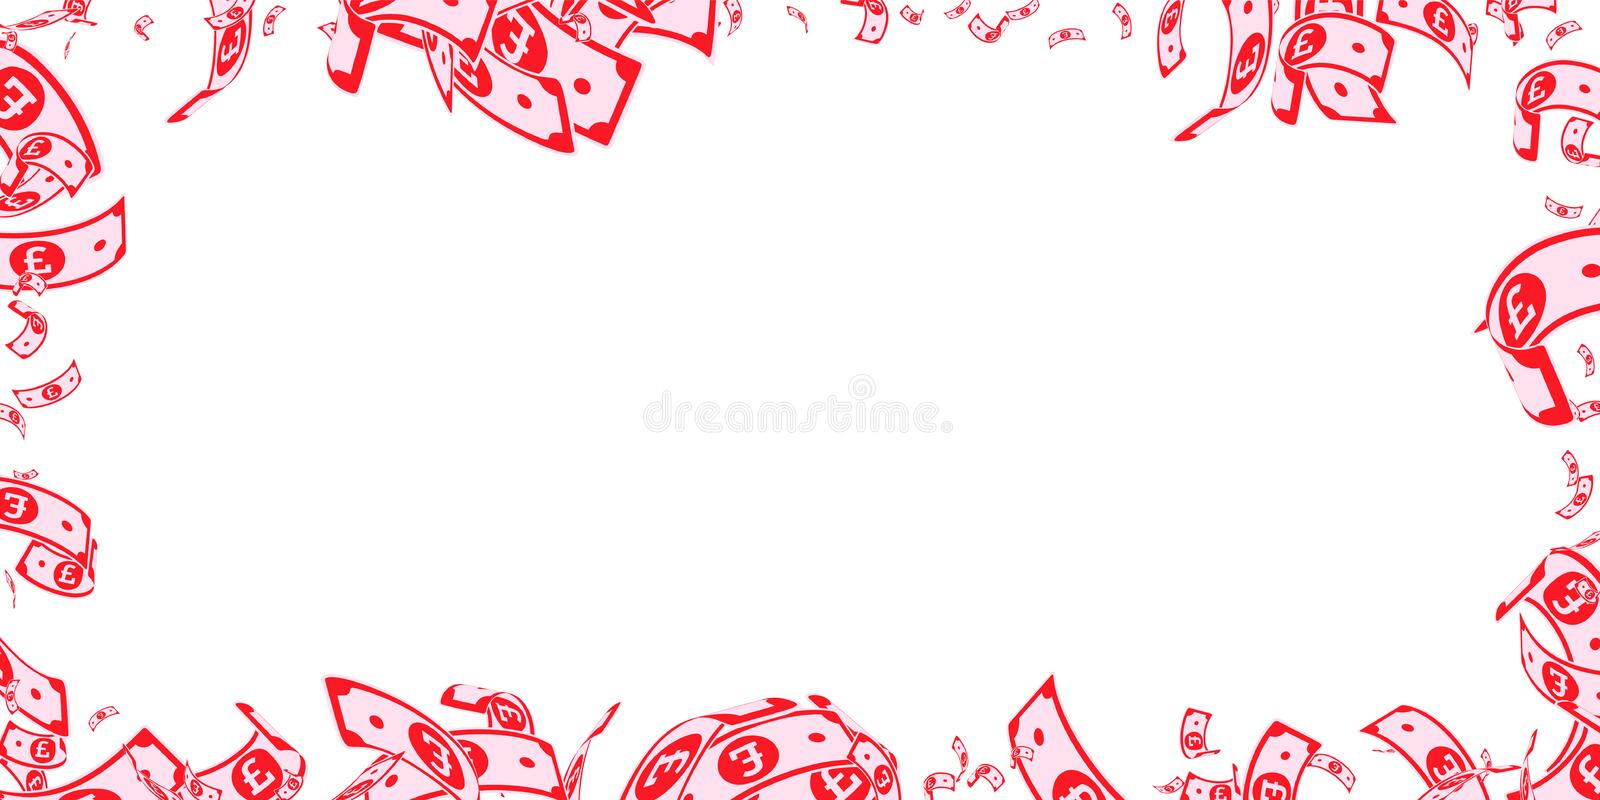 British pound notes falling. Messy GBP bills on wh royalty free illustration